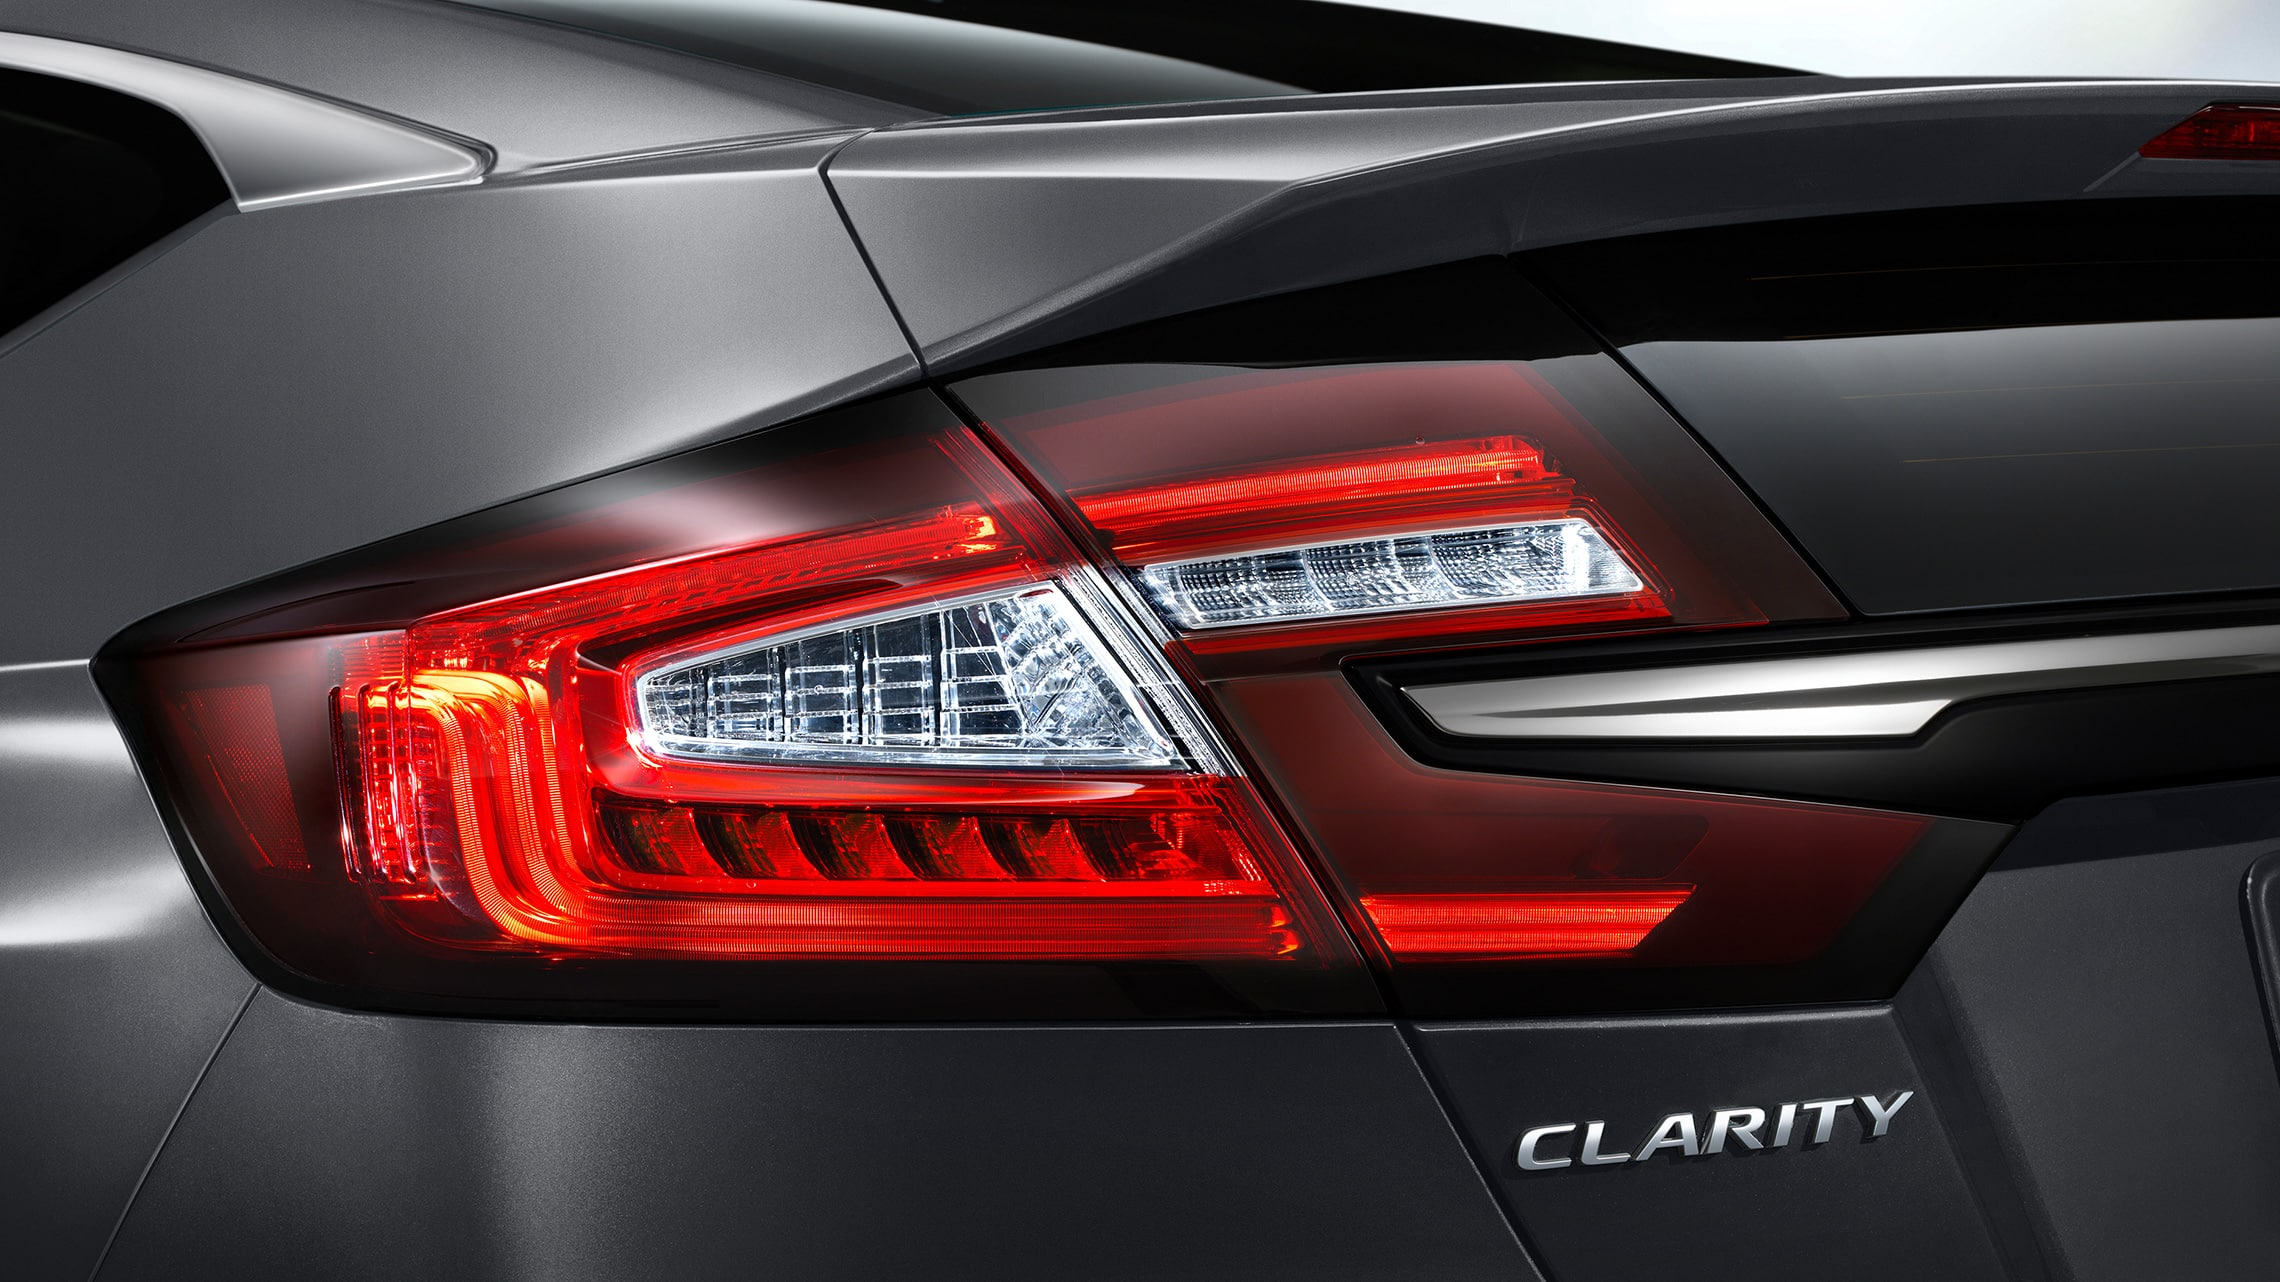 Detail of LED taillights on 2021 Clarity Plug-In Hybrid in Modern Steel Metallic.